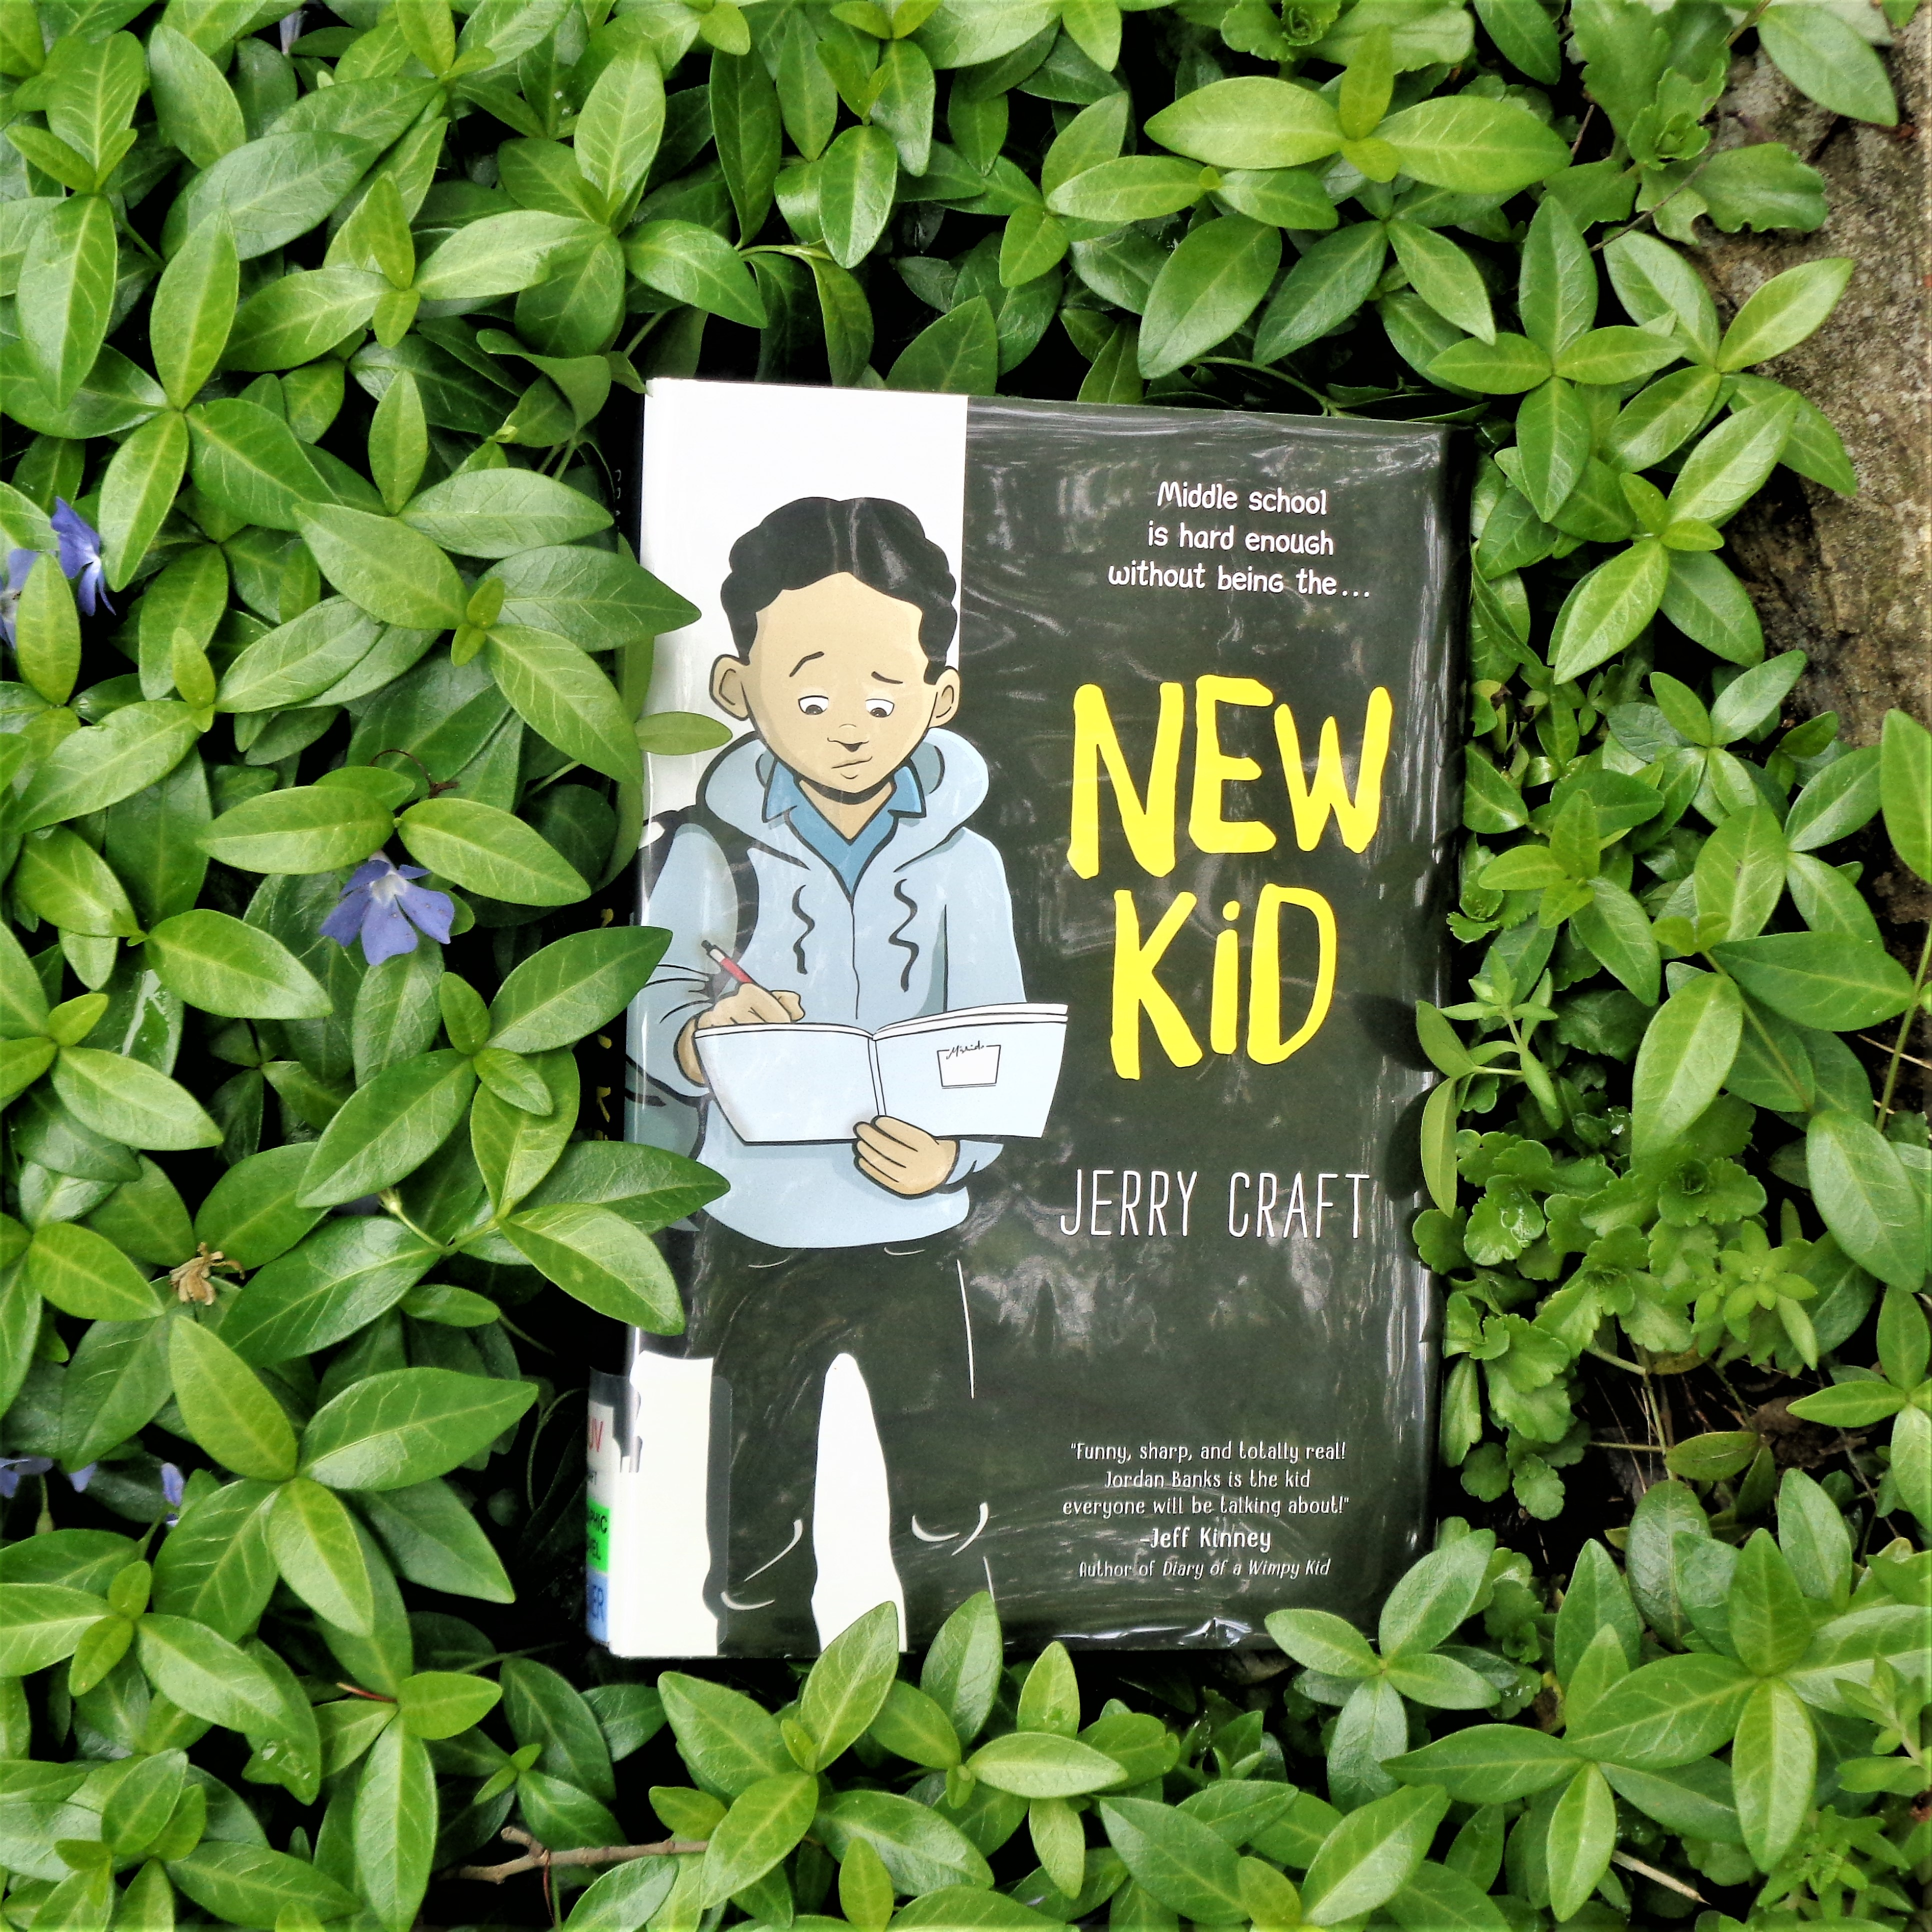 New Kid By Jerry Craft – Pages Unbound